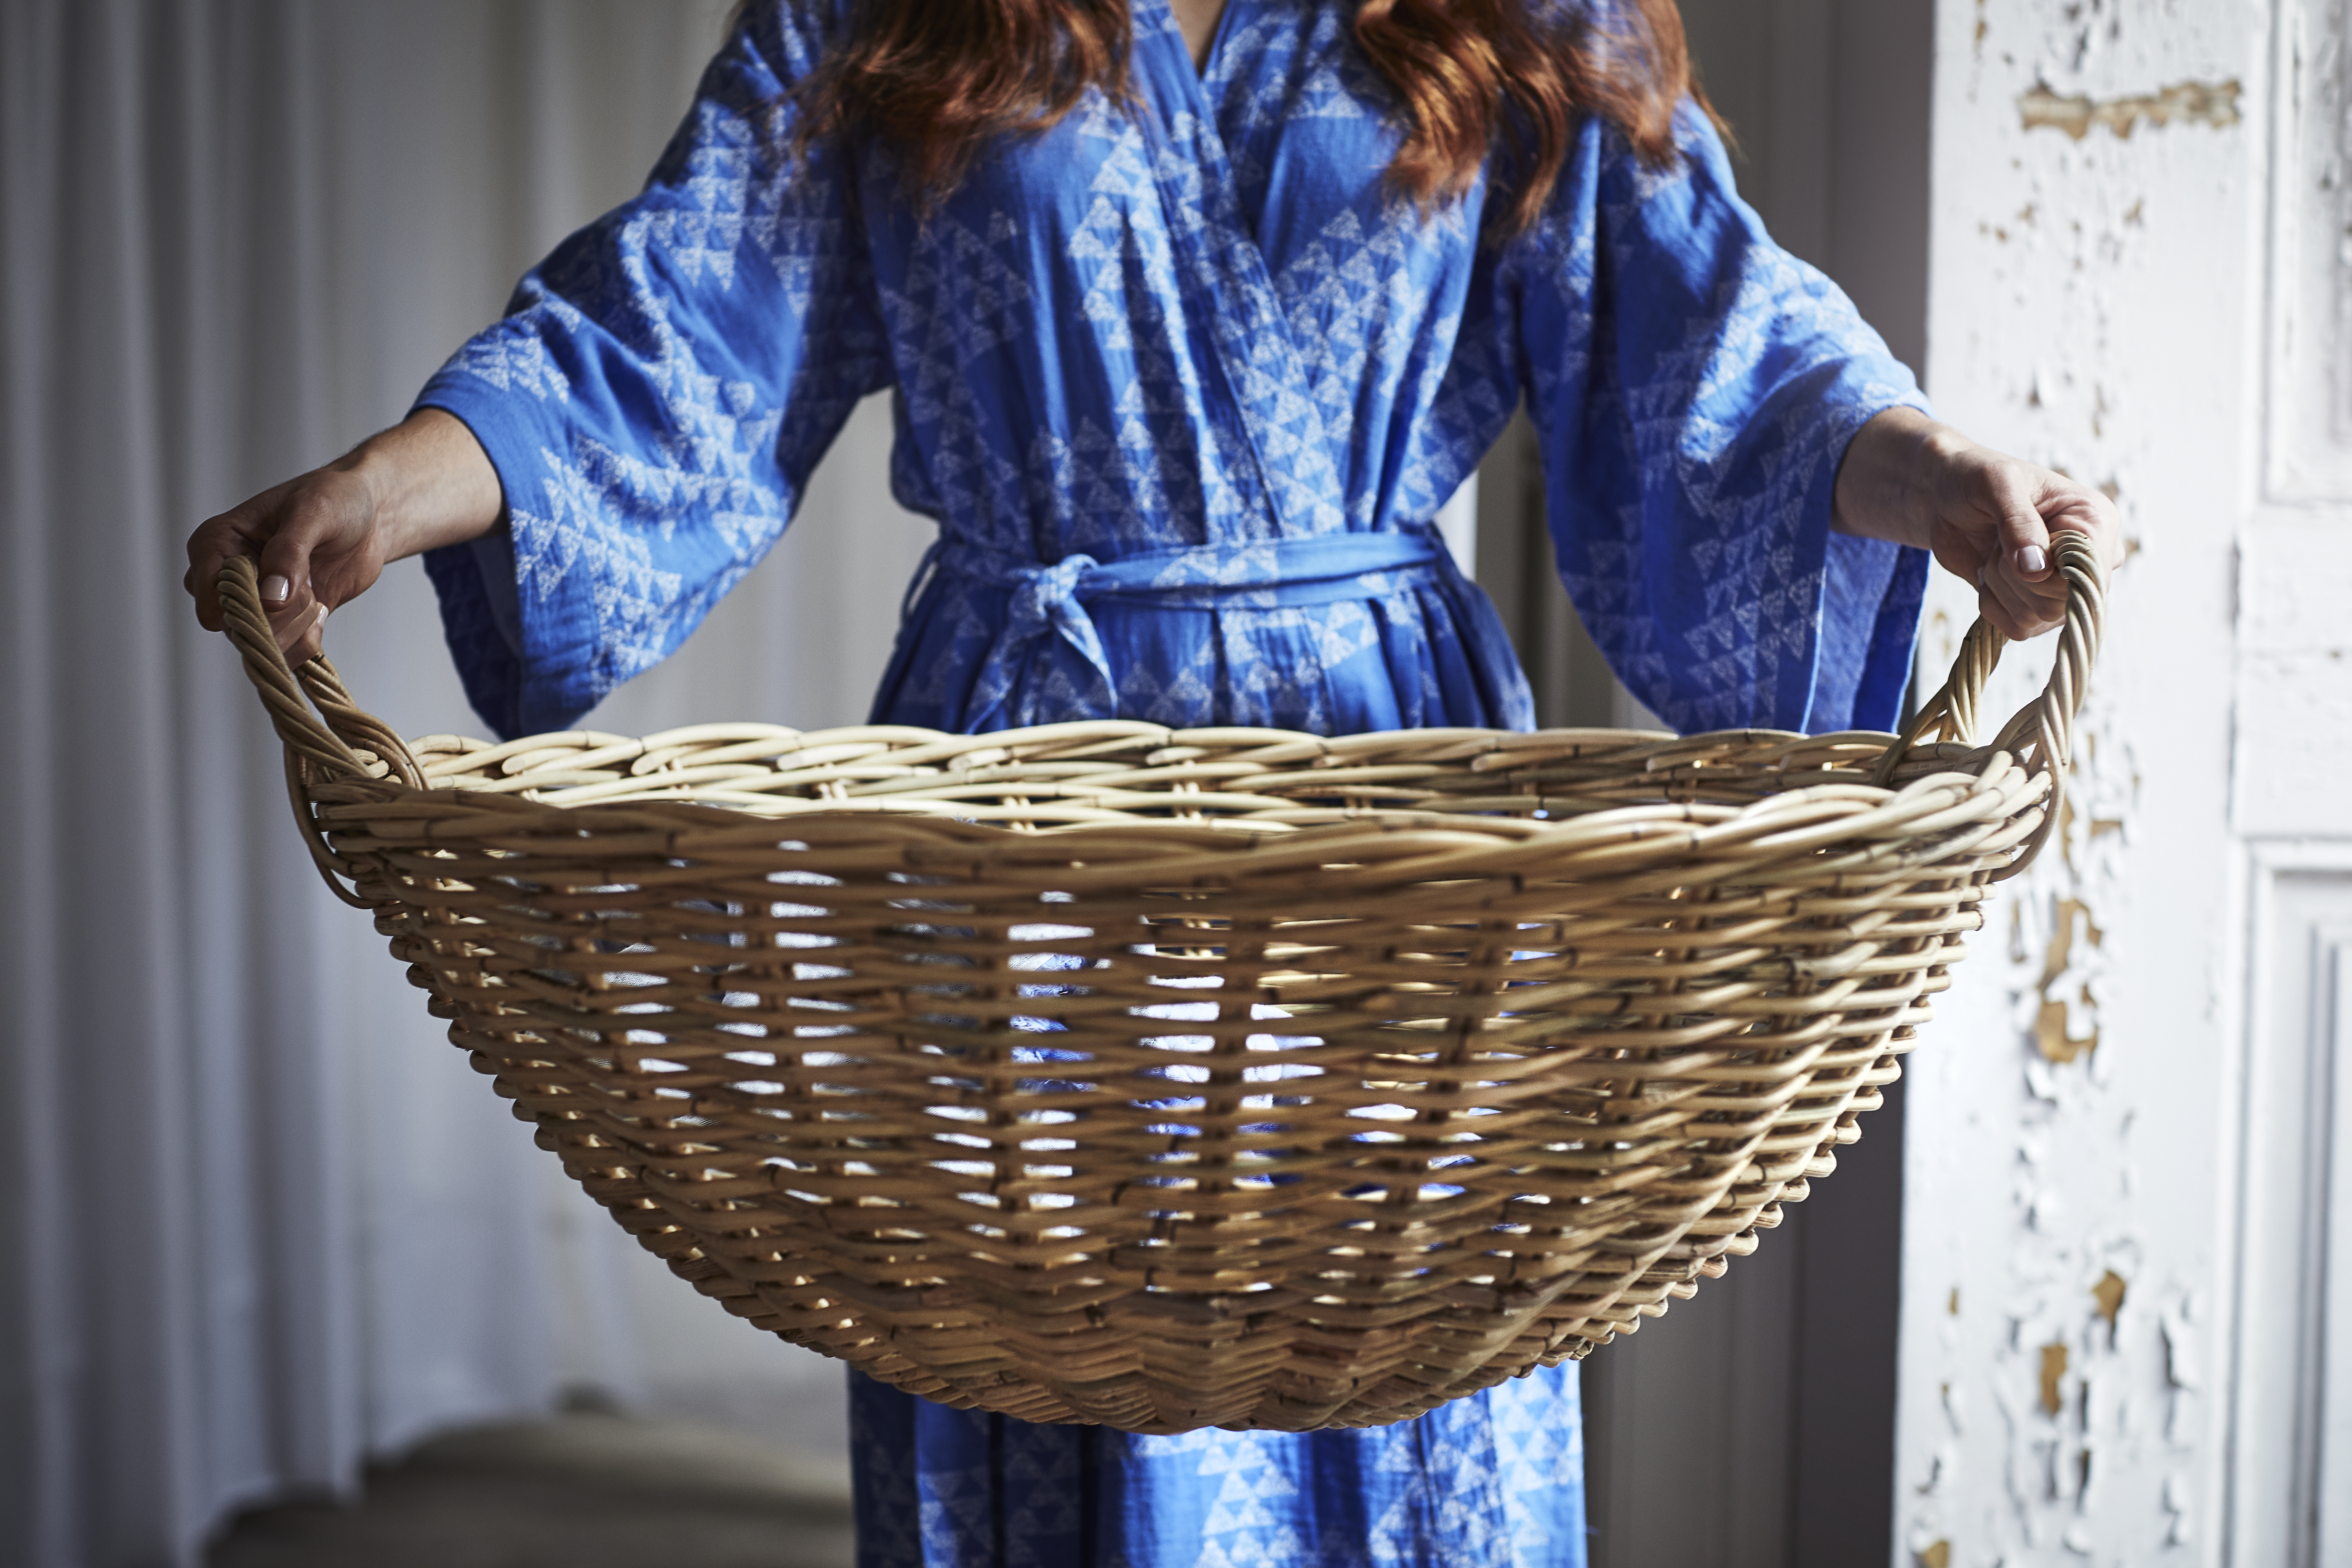 Woman in blue robe holding rattan basket